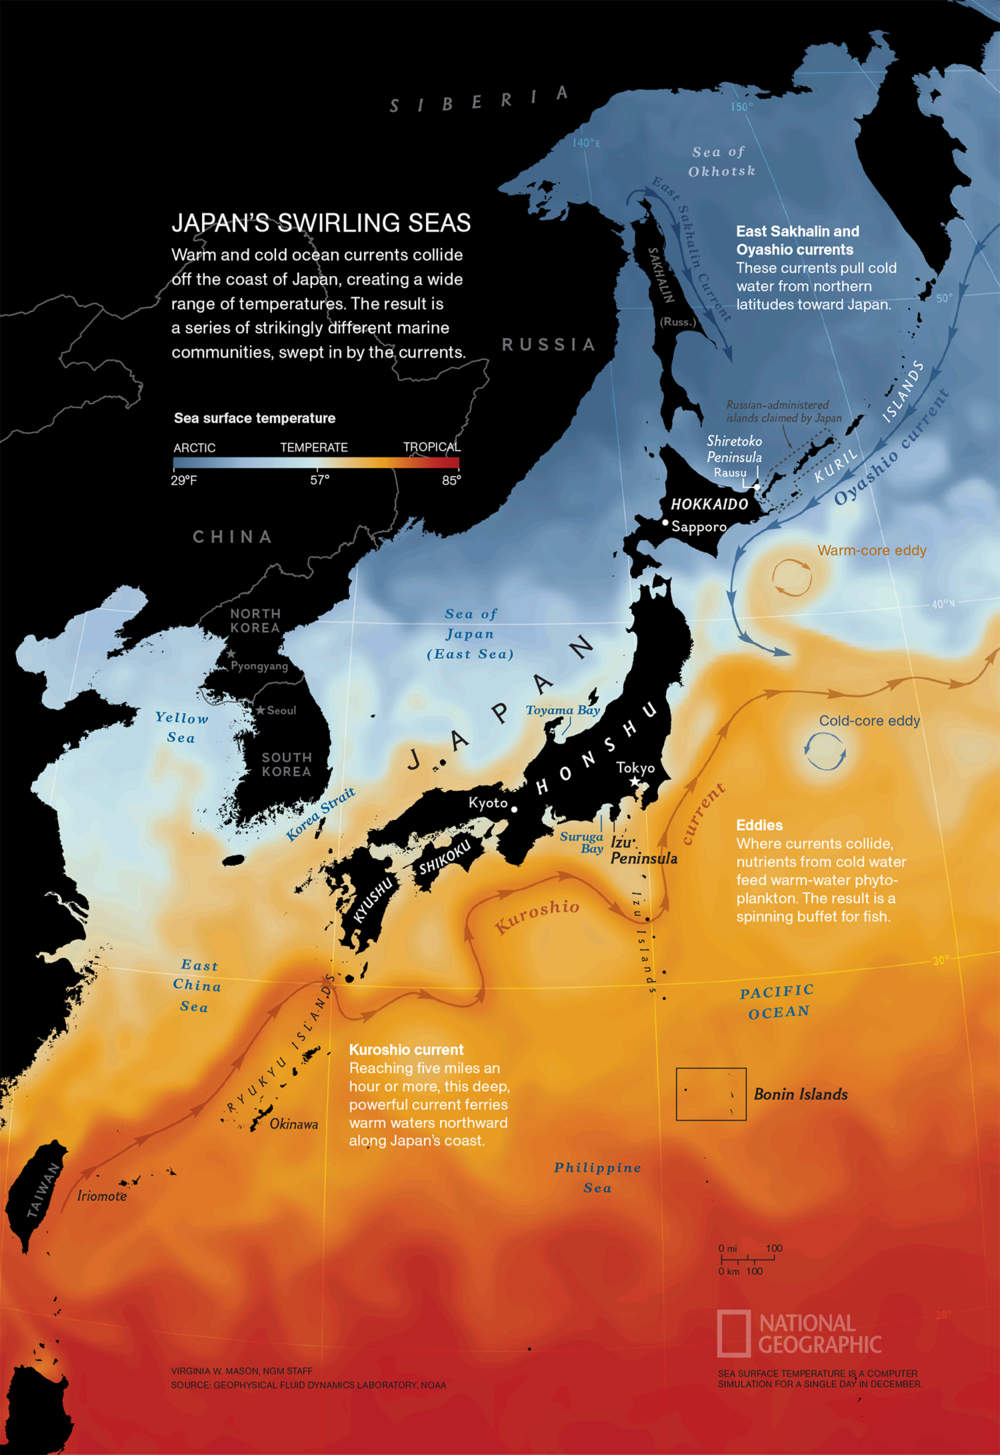 Japan's Swirling Seas